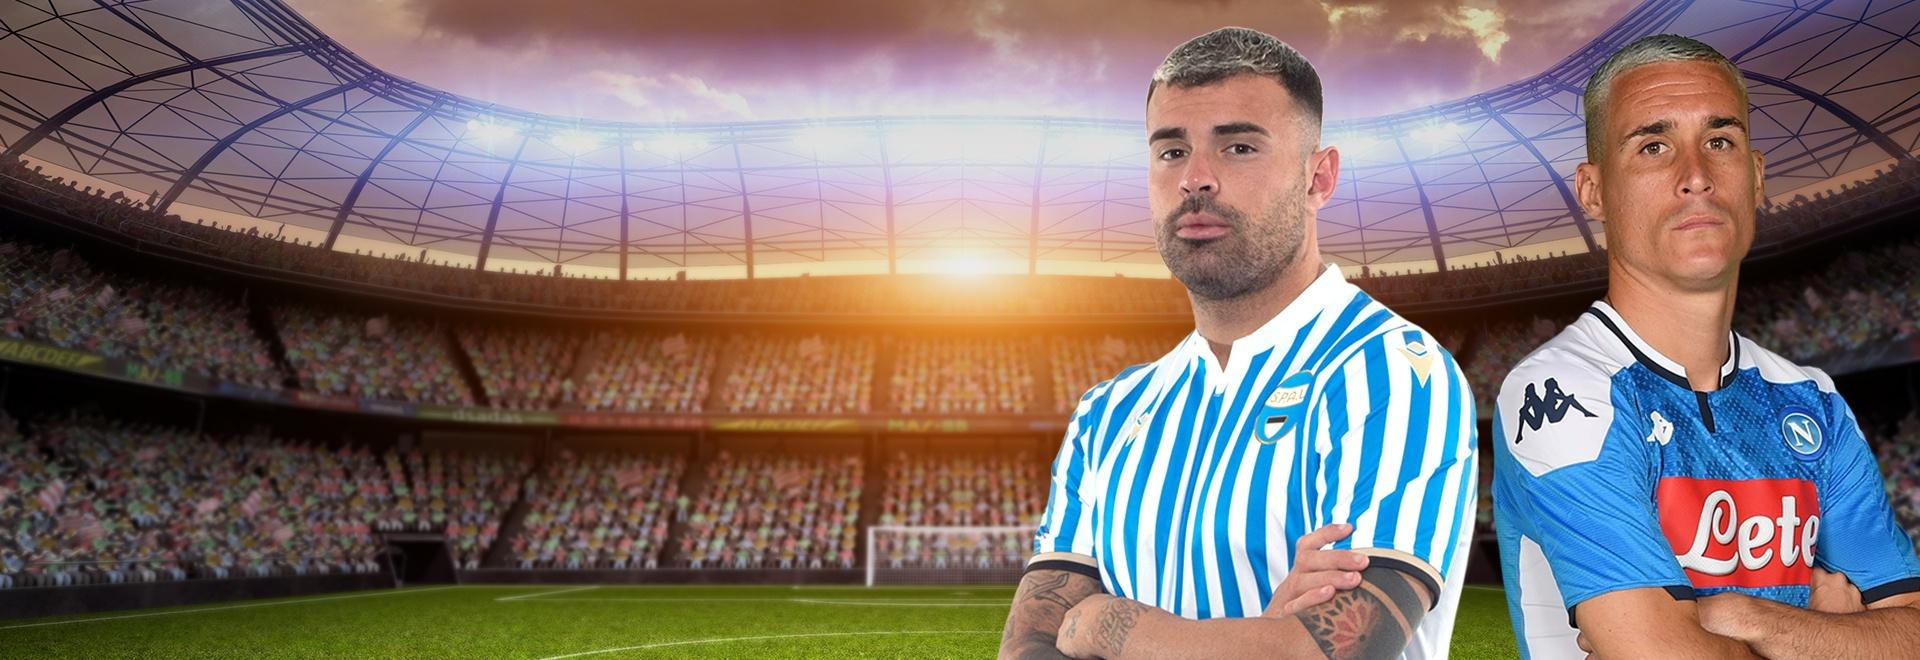 Spal - Napoli. 9a g.